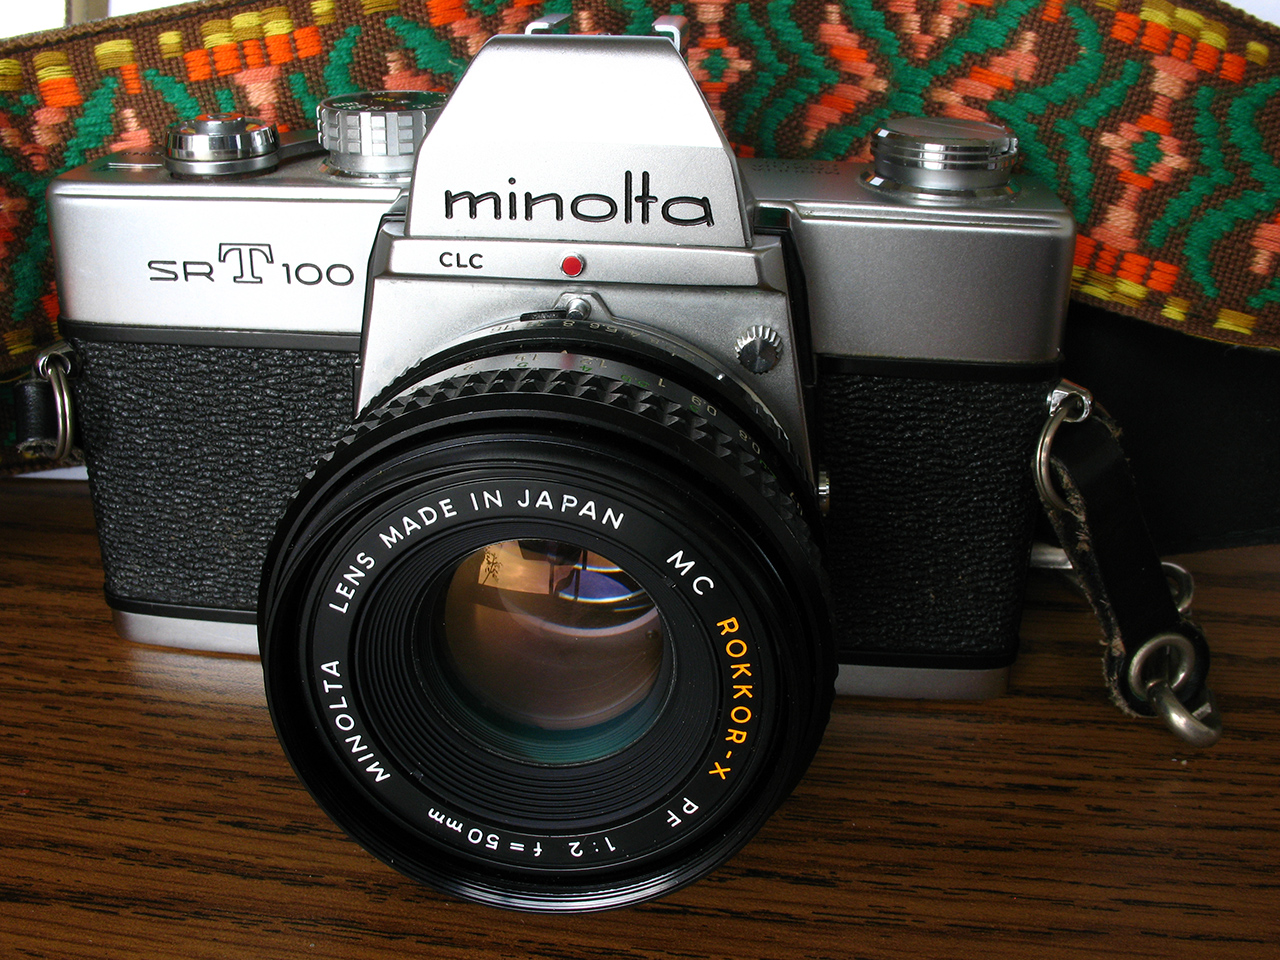 Camera Geekery: Minolta SRT 100X review